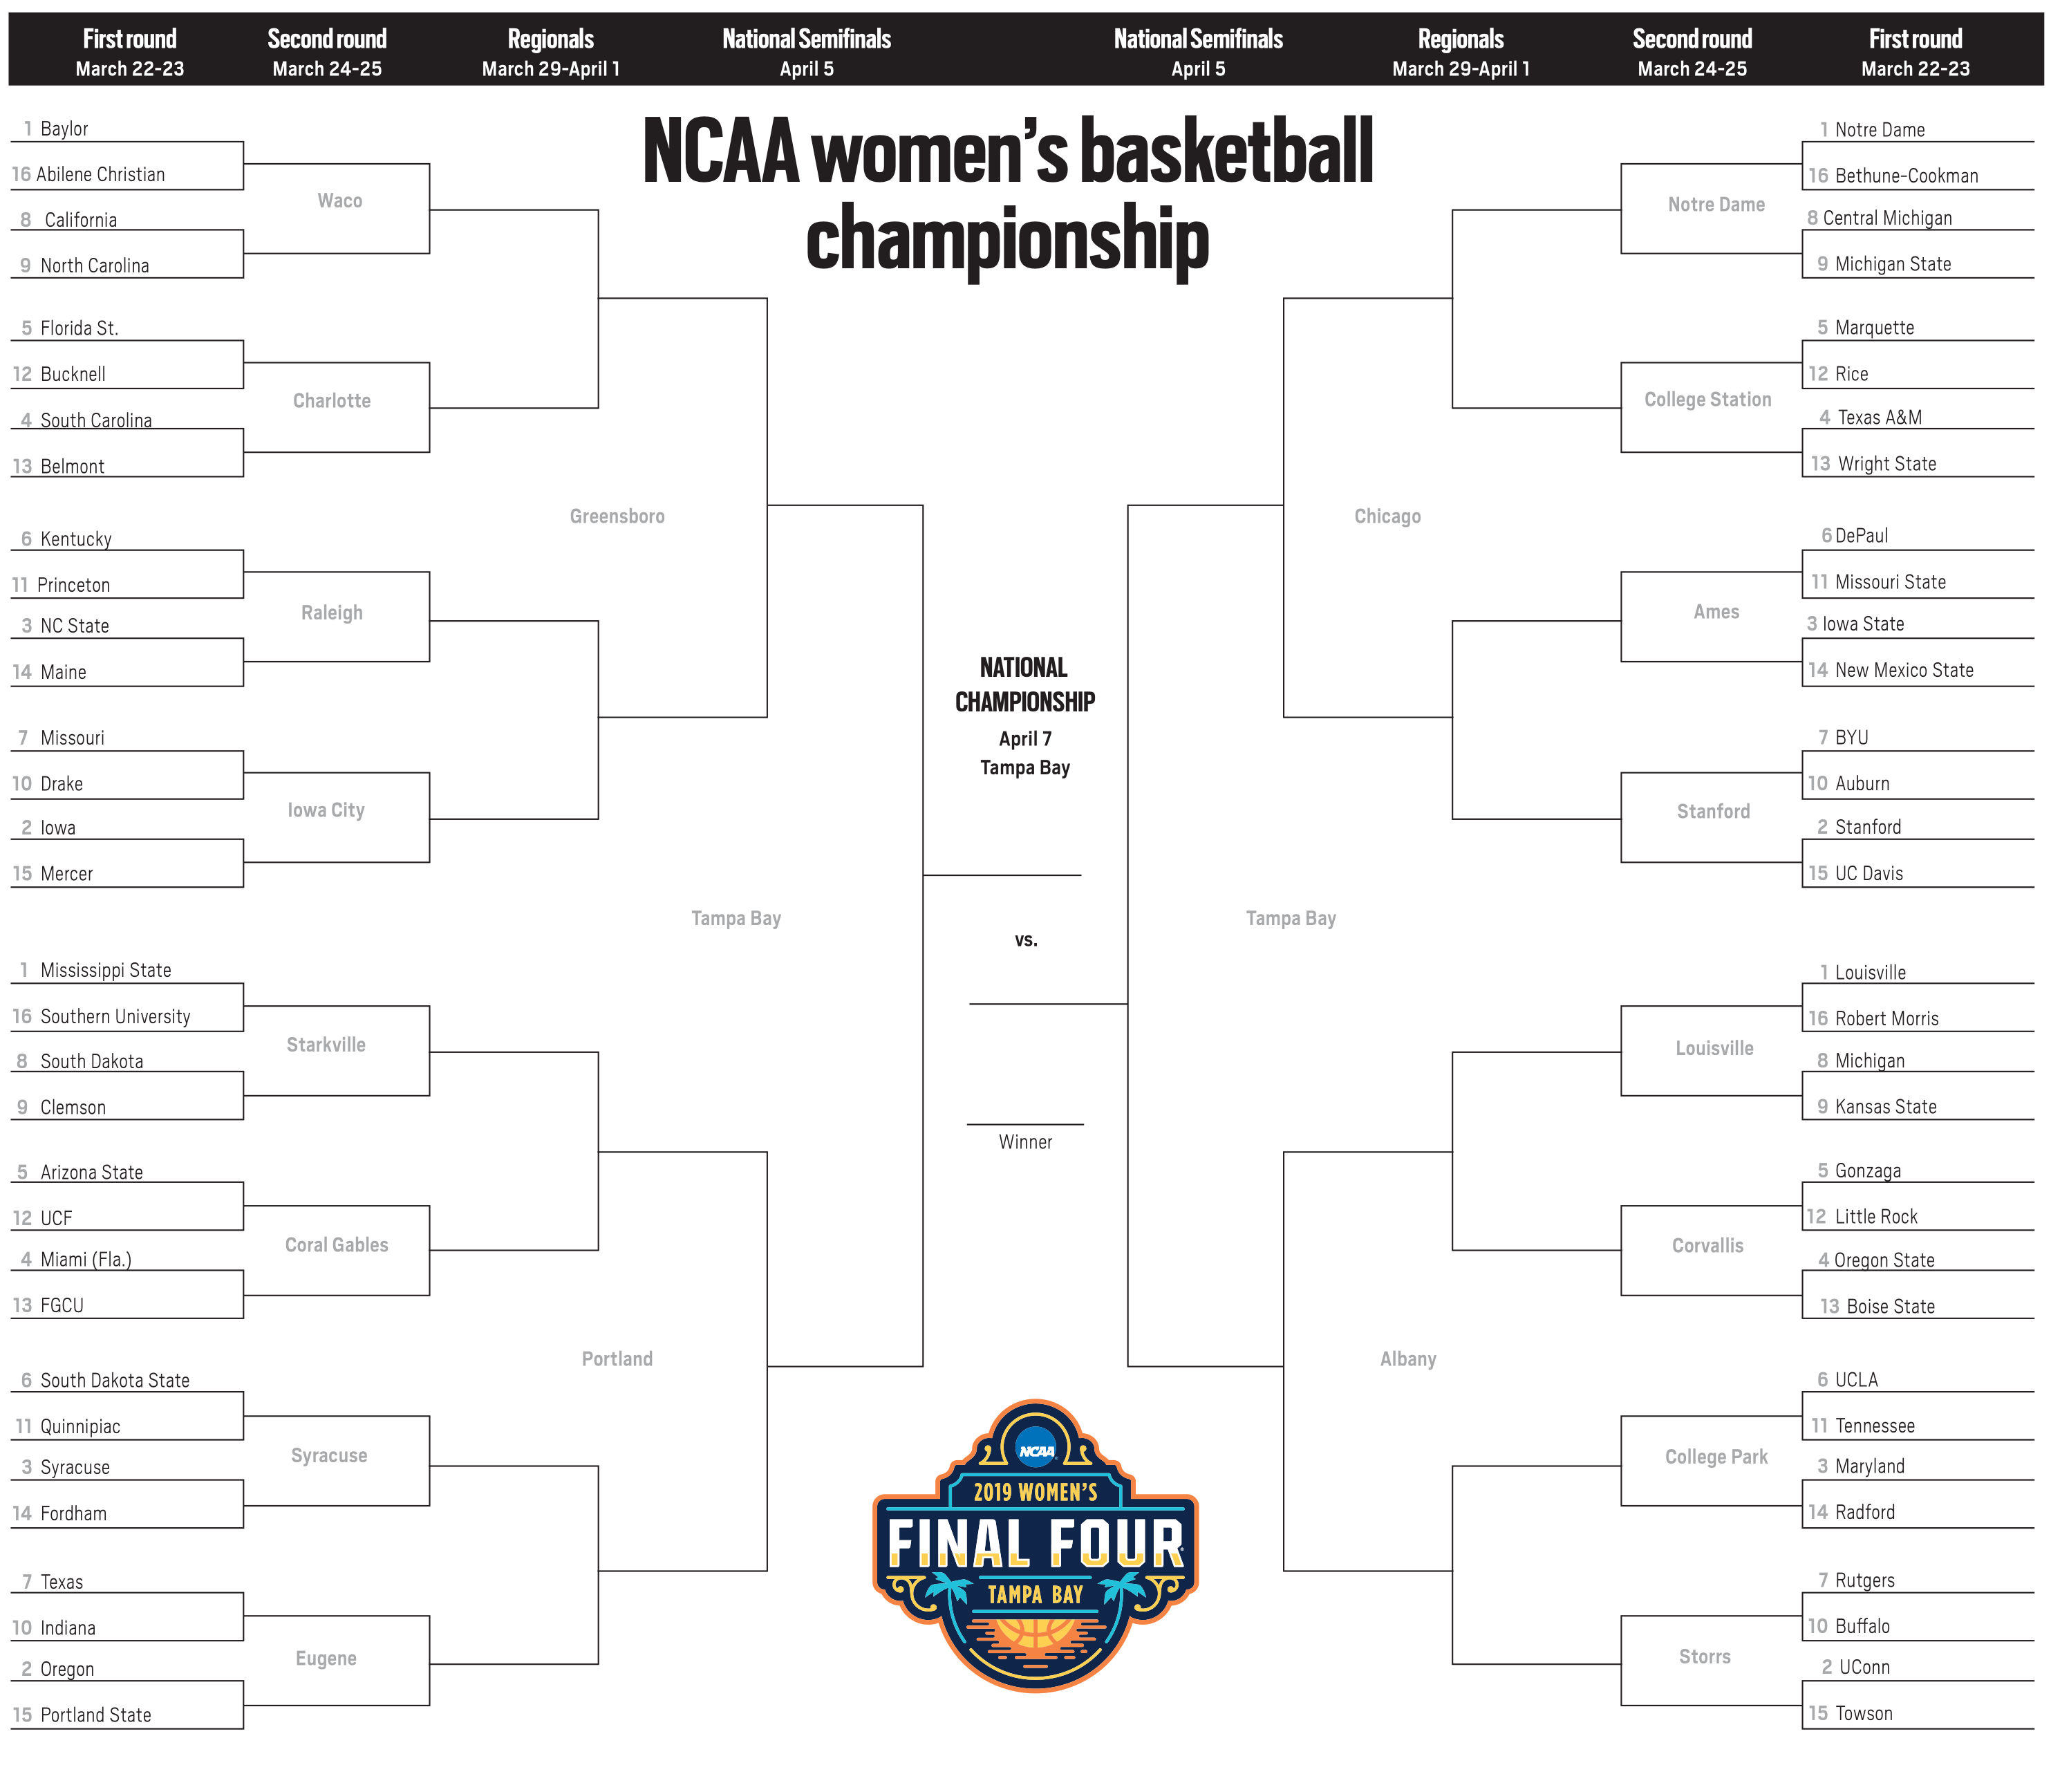 photograph about Printable Ncaa Bracket With Times and Channels identify March Insanity 2019: Printable NCAA Event womens